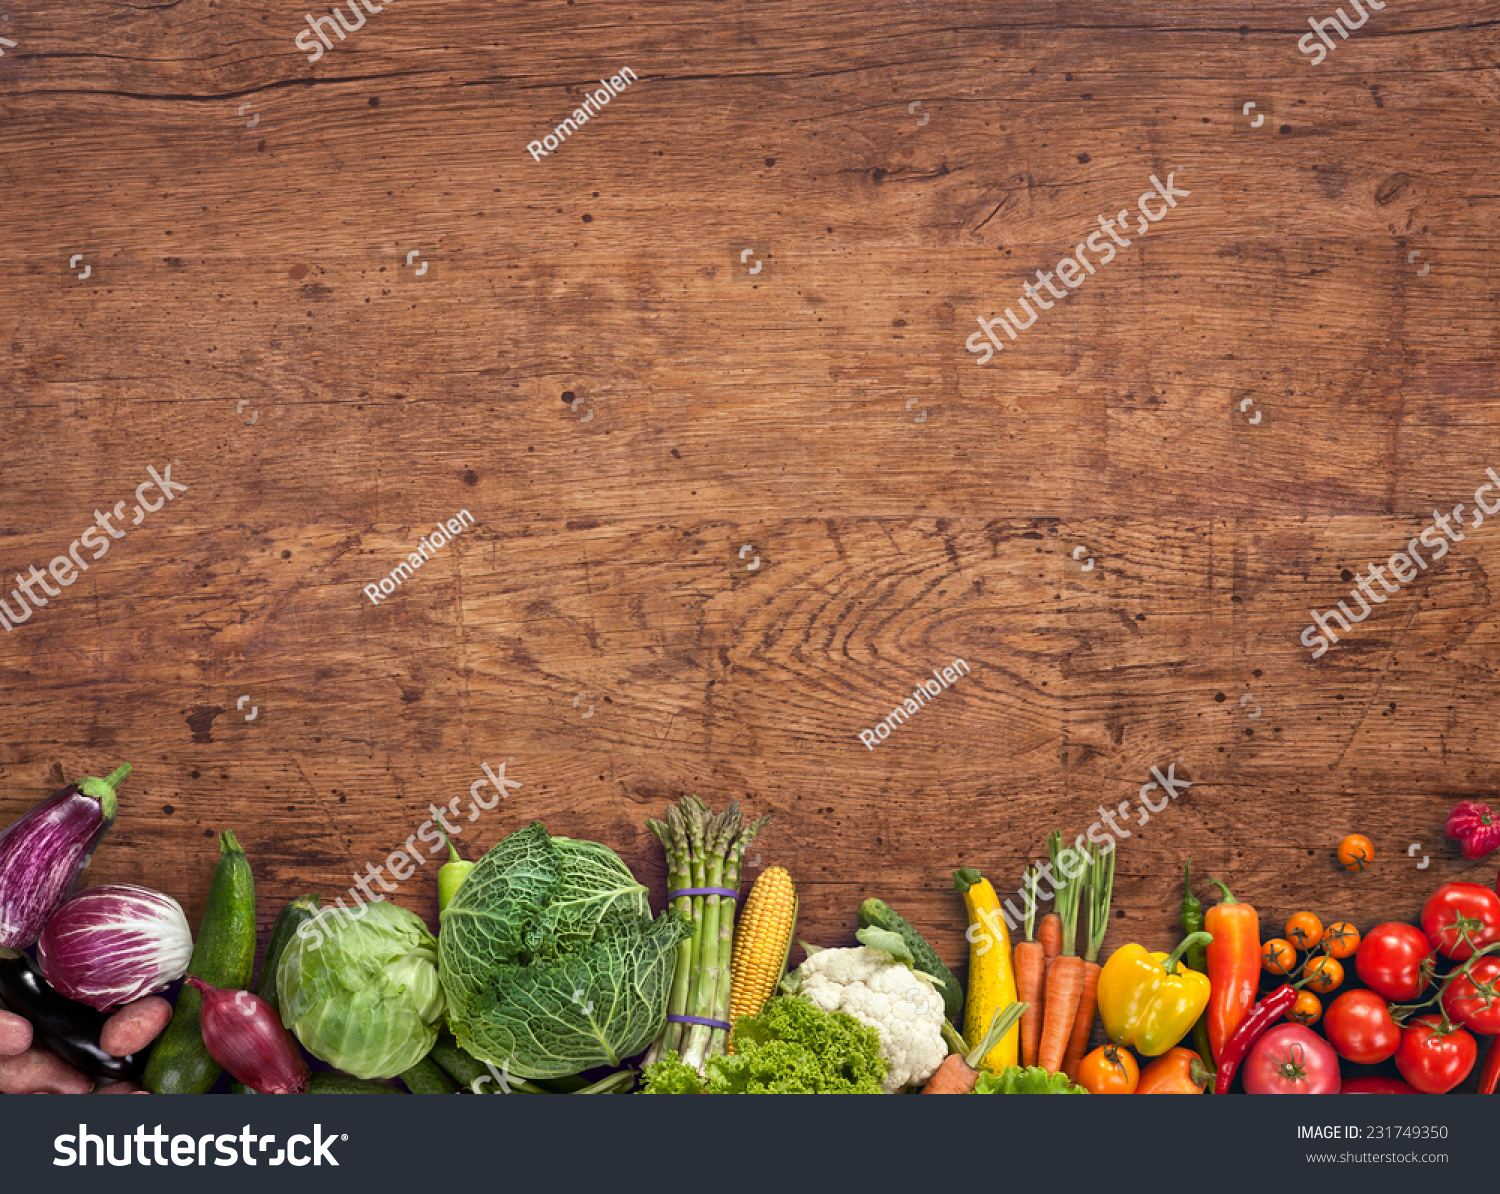 Food background studio photo of different fruits and vegetables - Healthy Food Background Studio Photography Of Different Fruits And Vegetables On Old Wooden Table